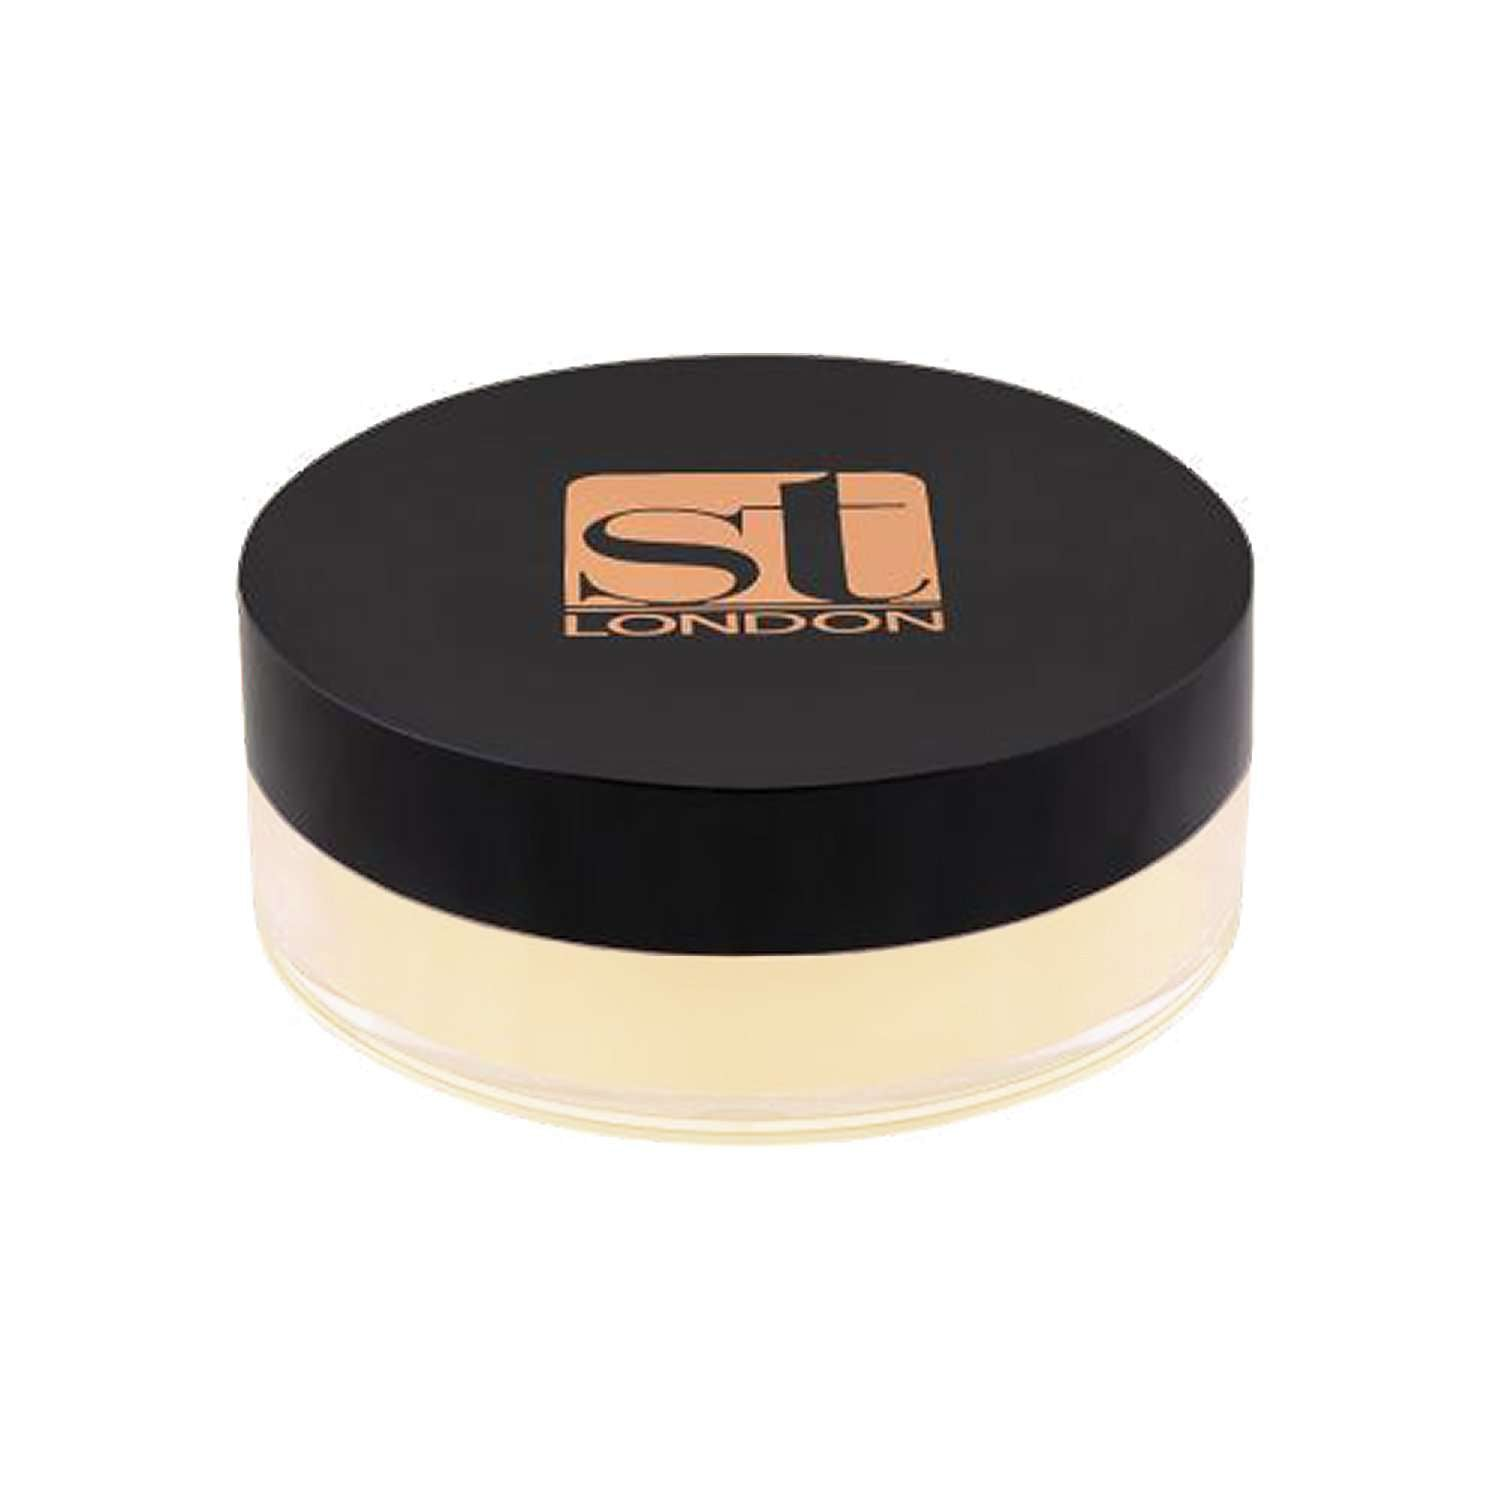 Mineralz Ultra Fine Loose Powder - Beige